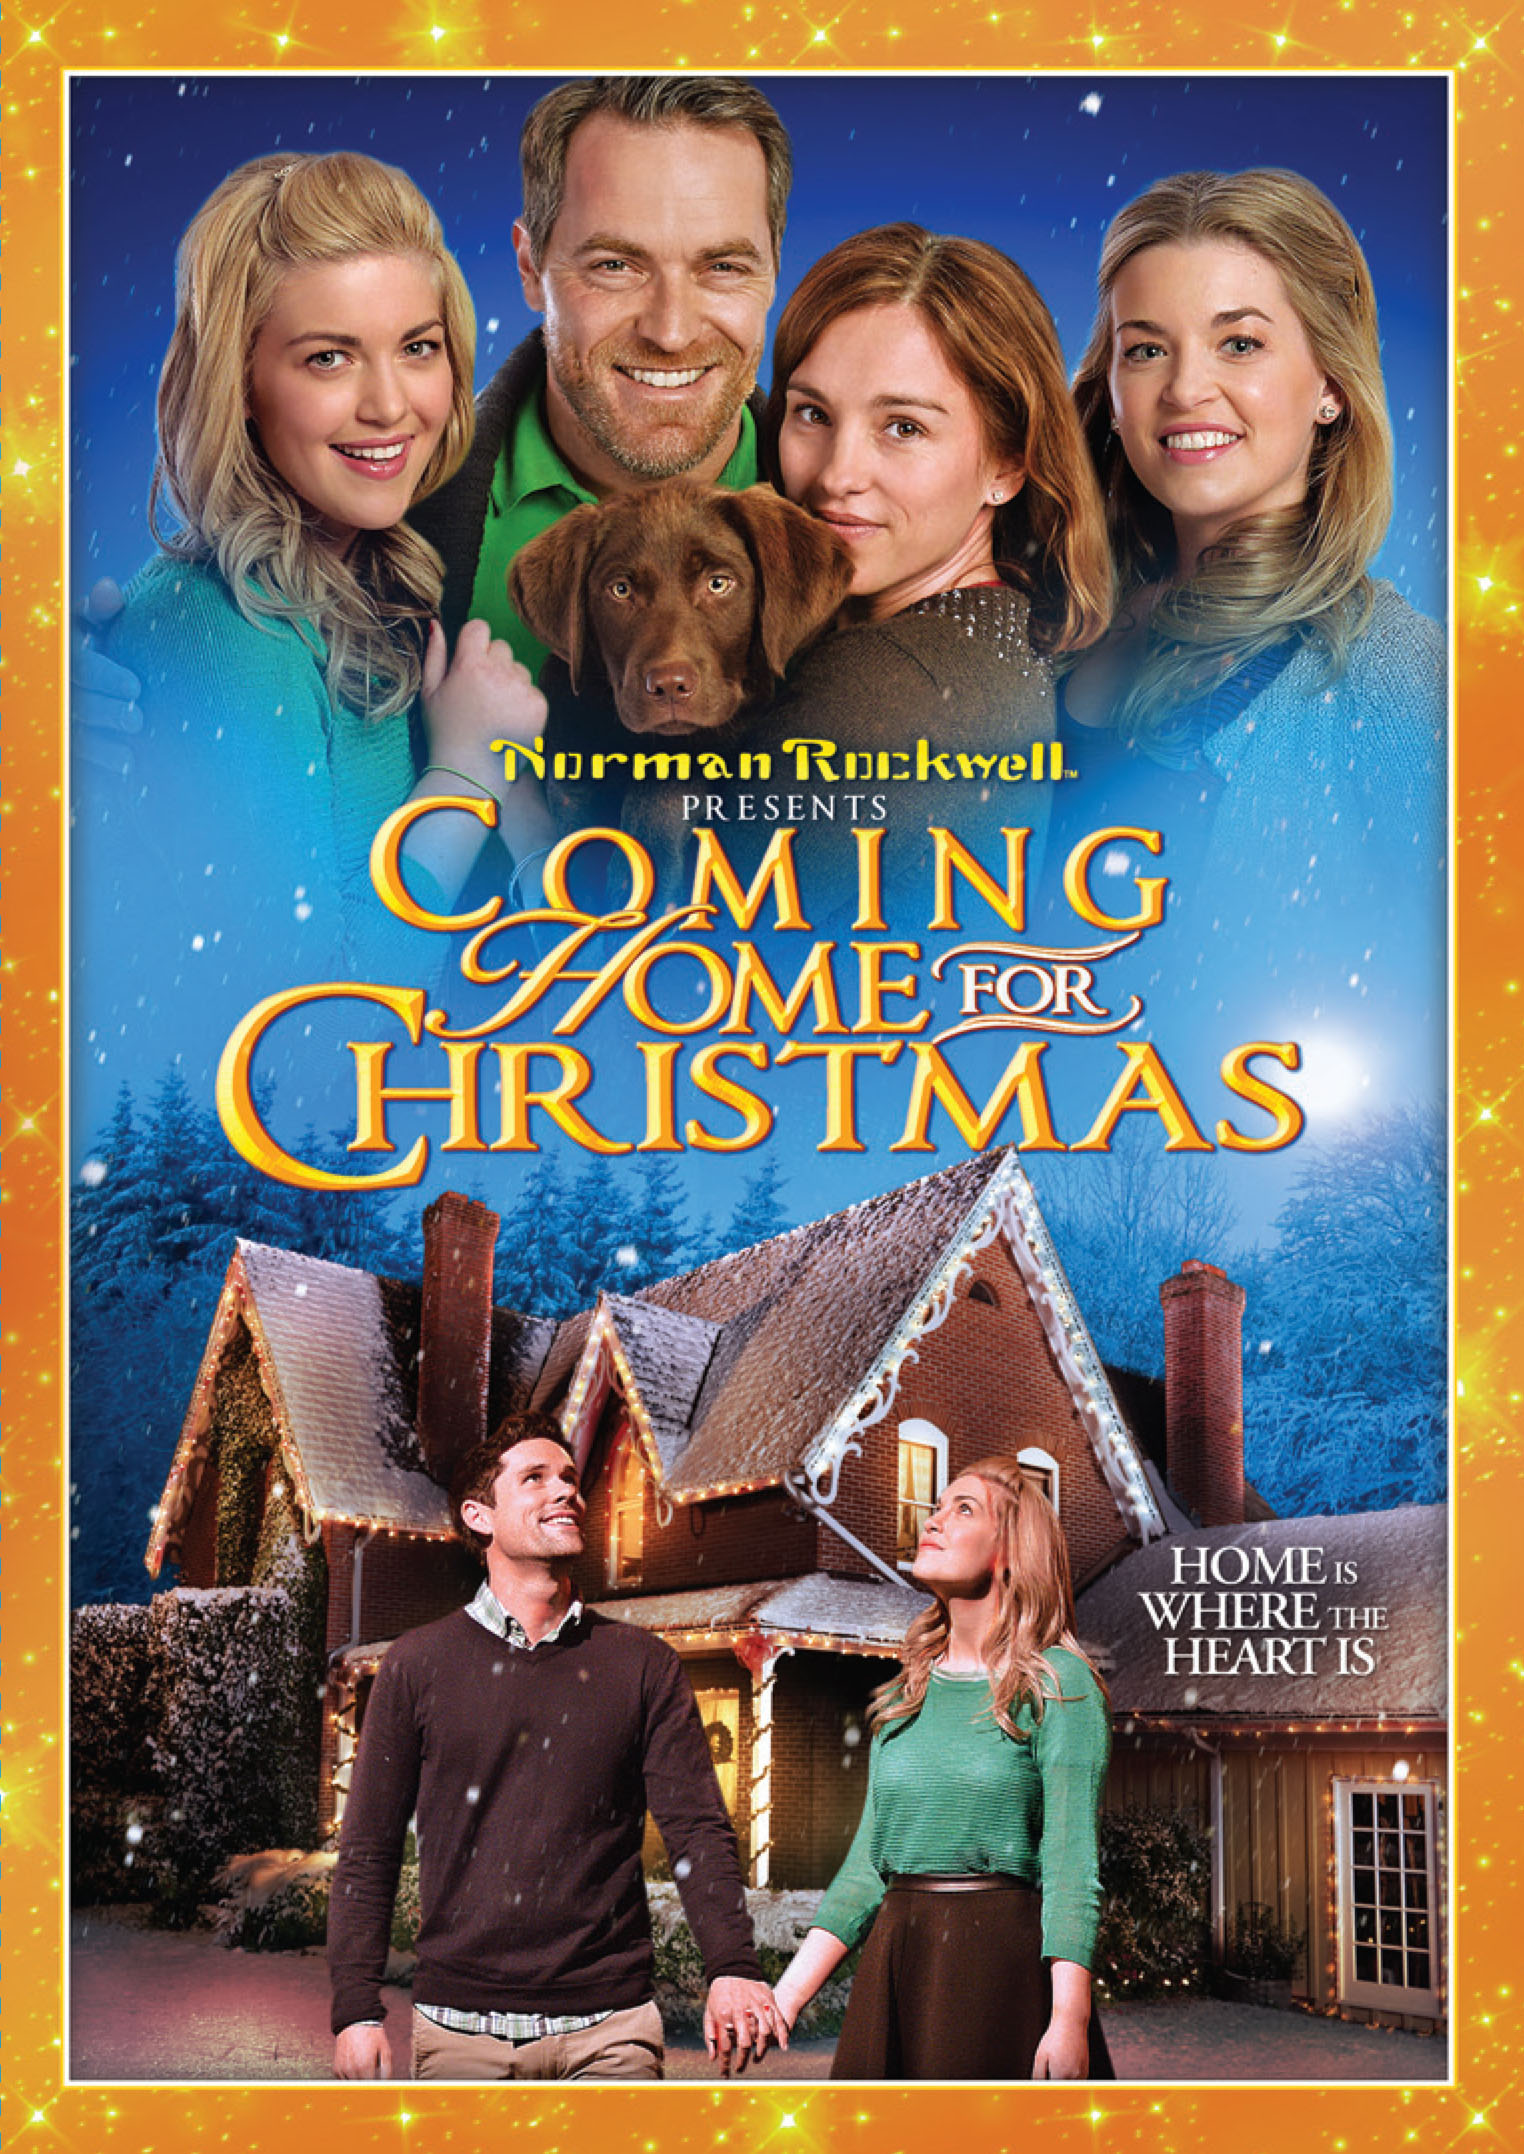 A Home For Christmas.Coming Home For Christmas Out Soon On Dvd Movie Mom